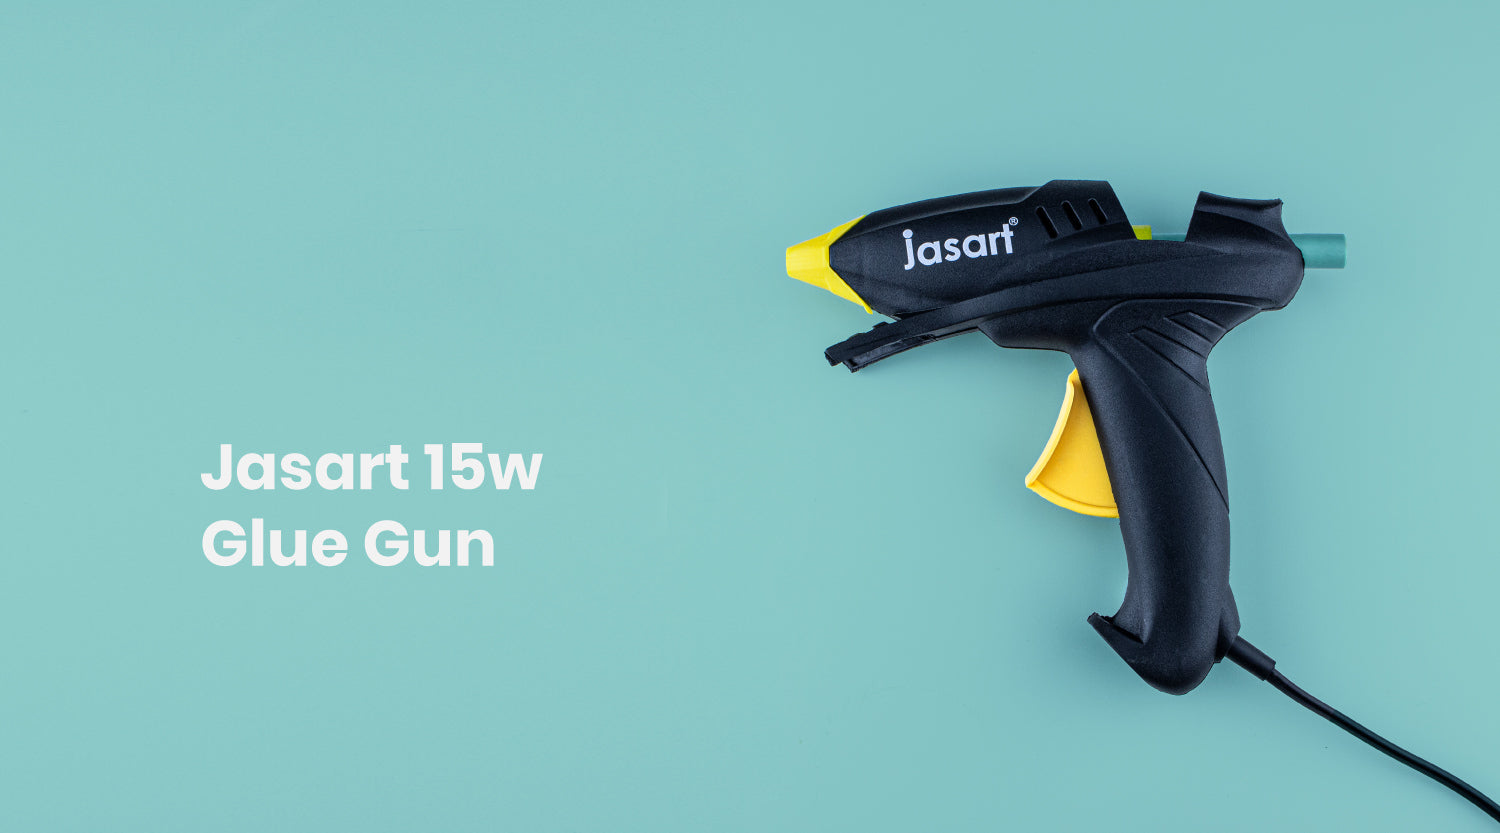 Jasart 15w Glue Gun - Make Wax Seals with Sealing Wax and an ordinary Glue Gun!